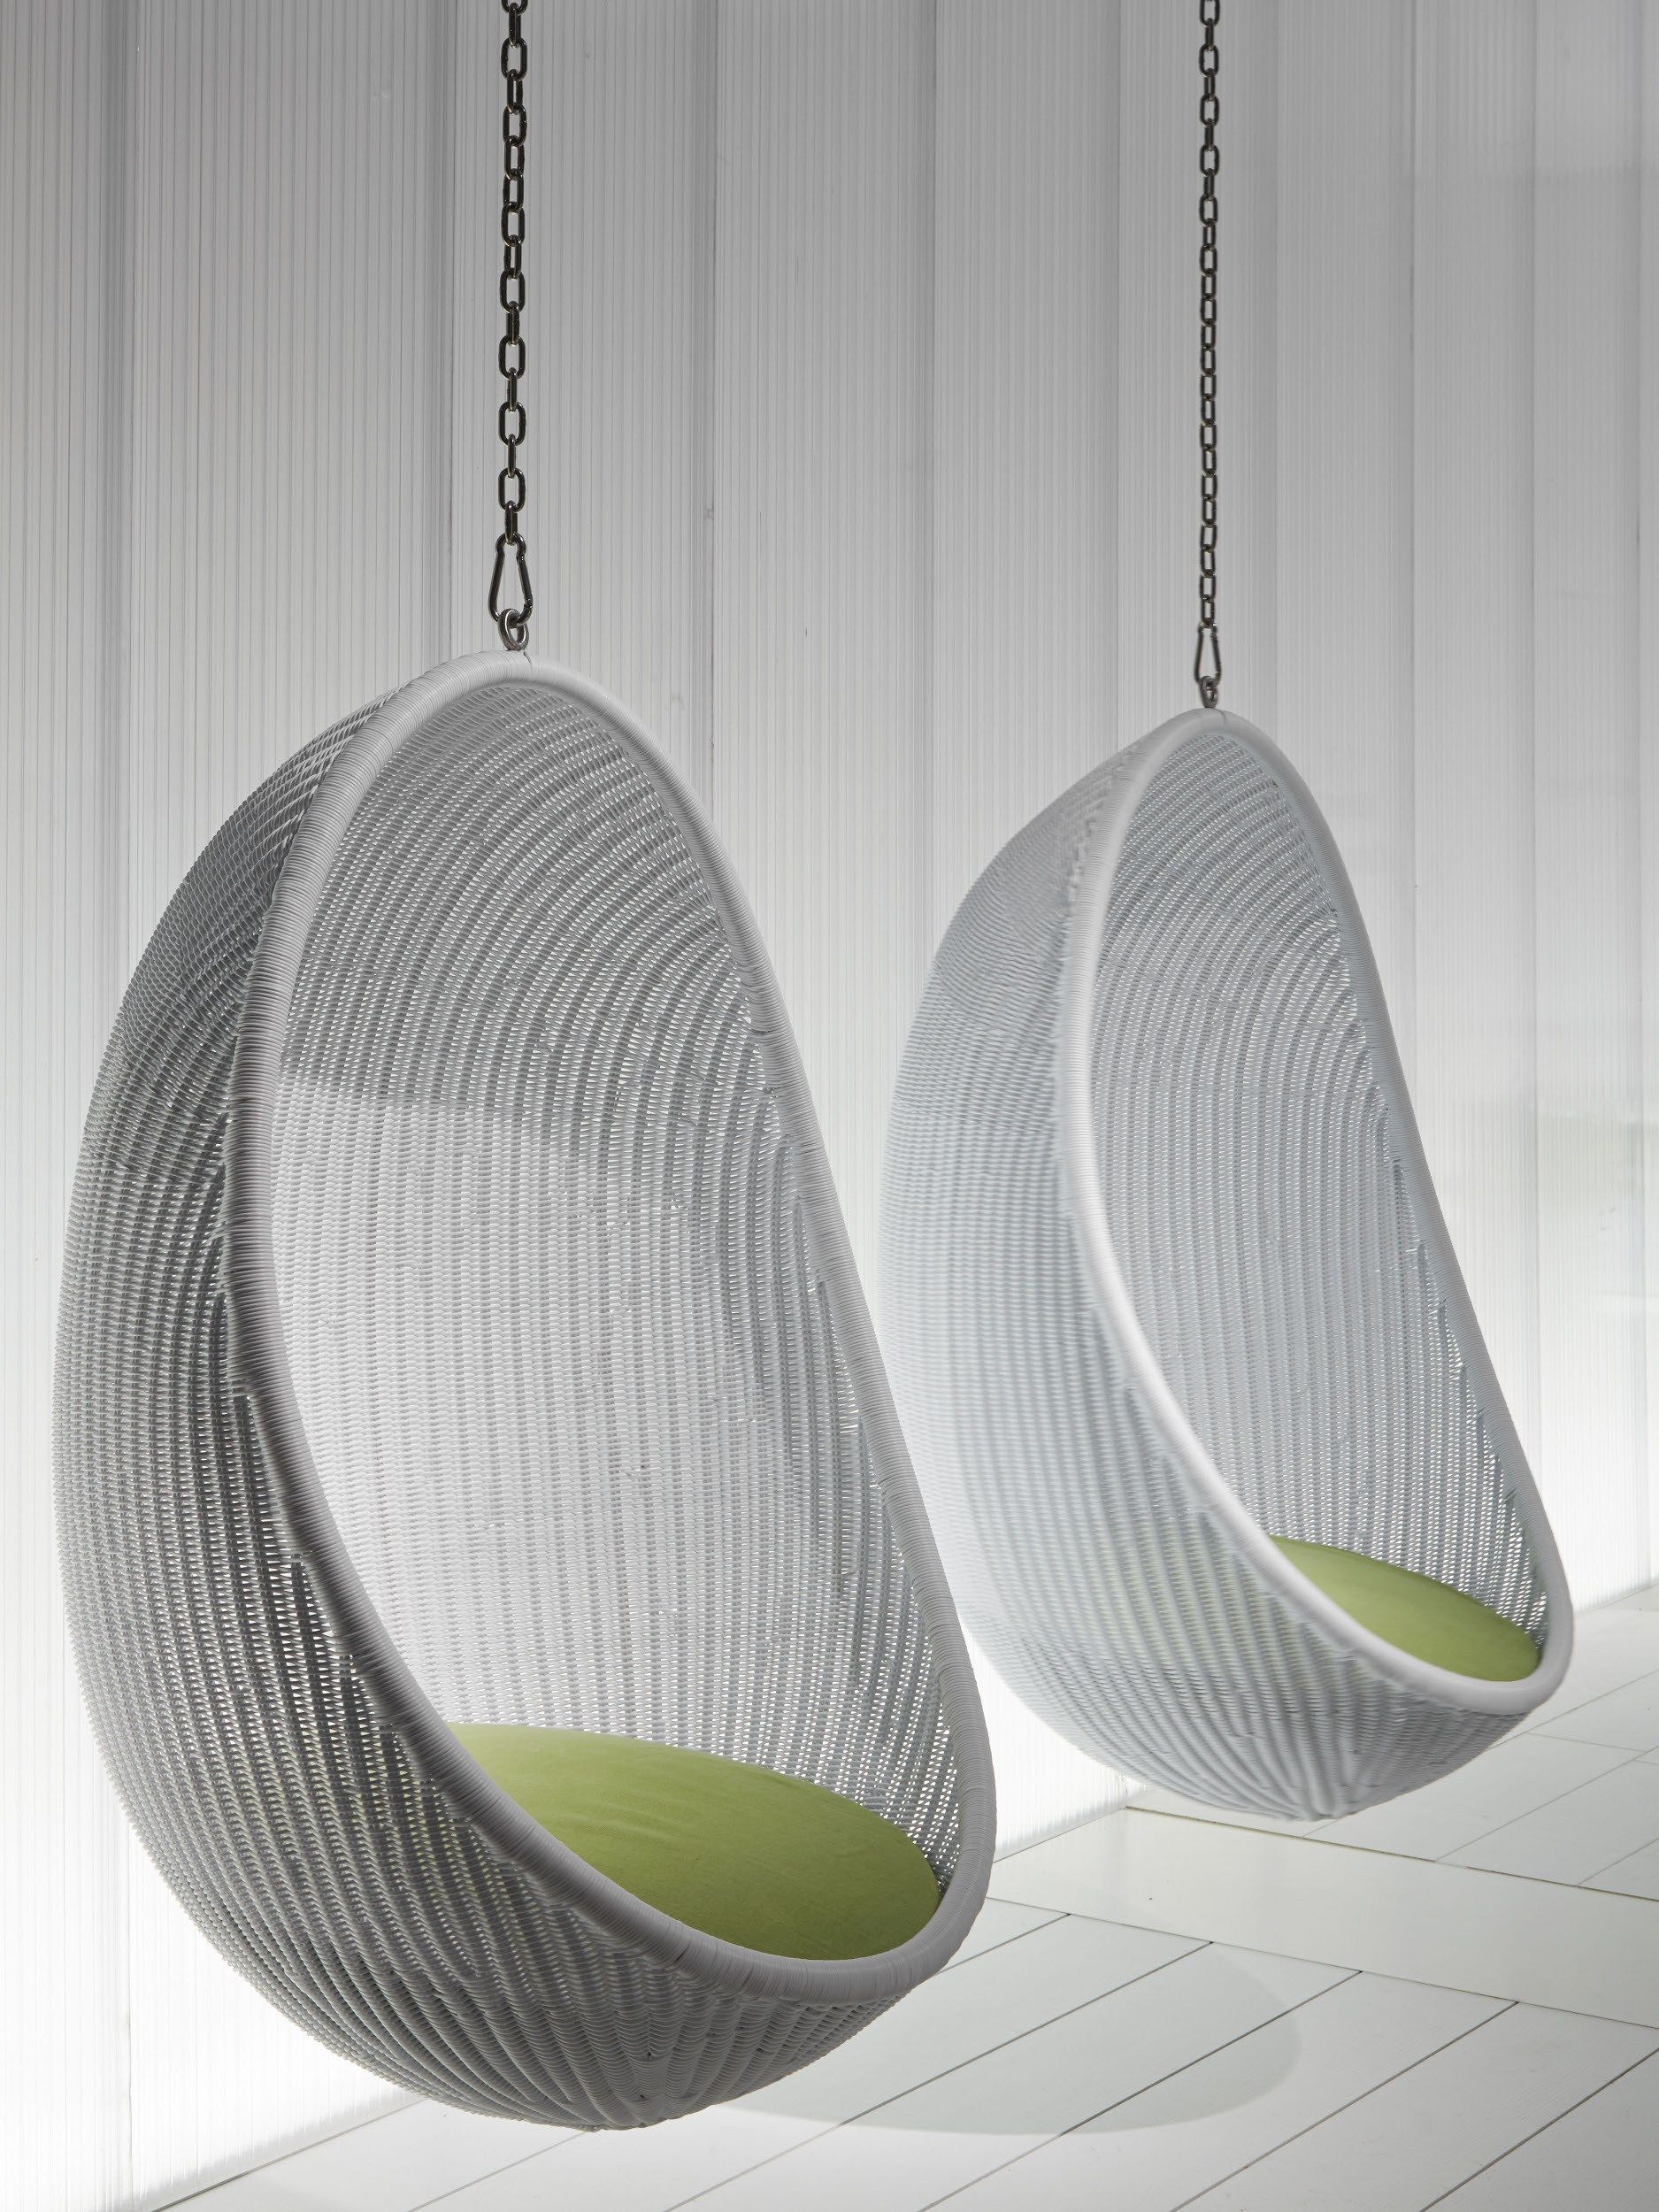 Woven Rattan Two Hanging Egg Chair